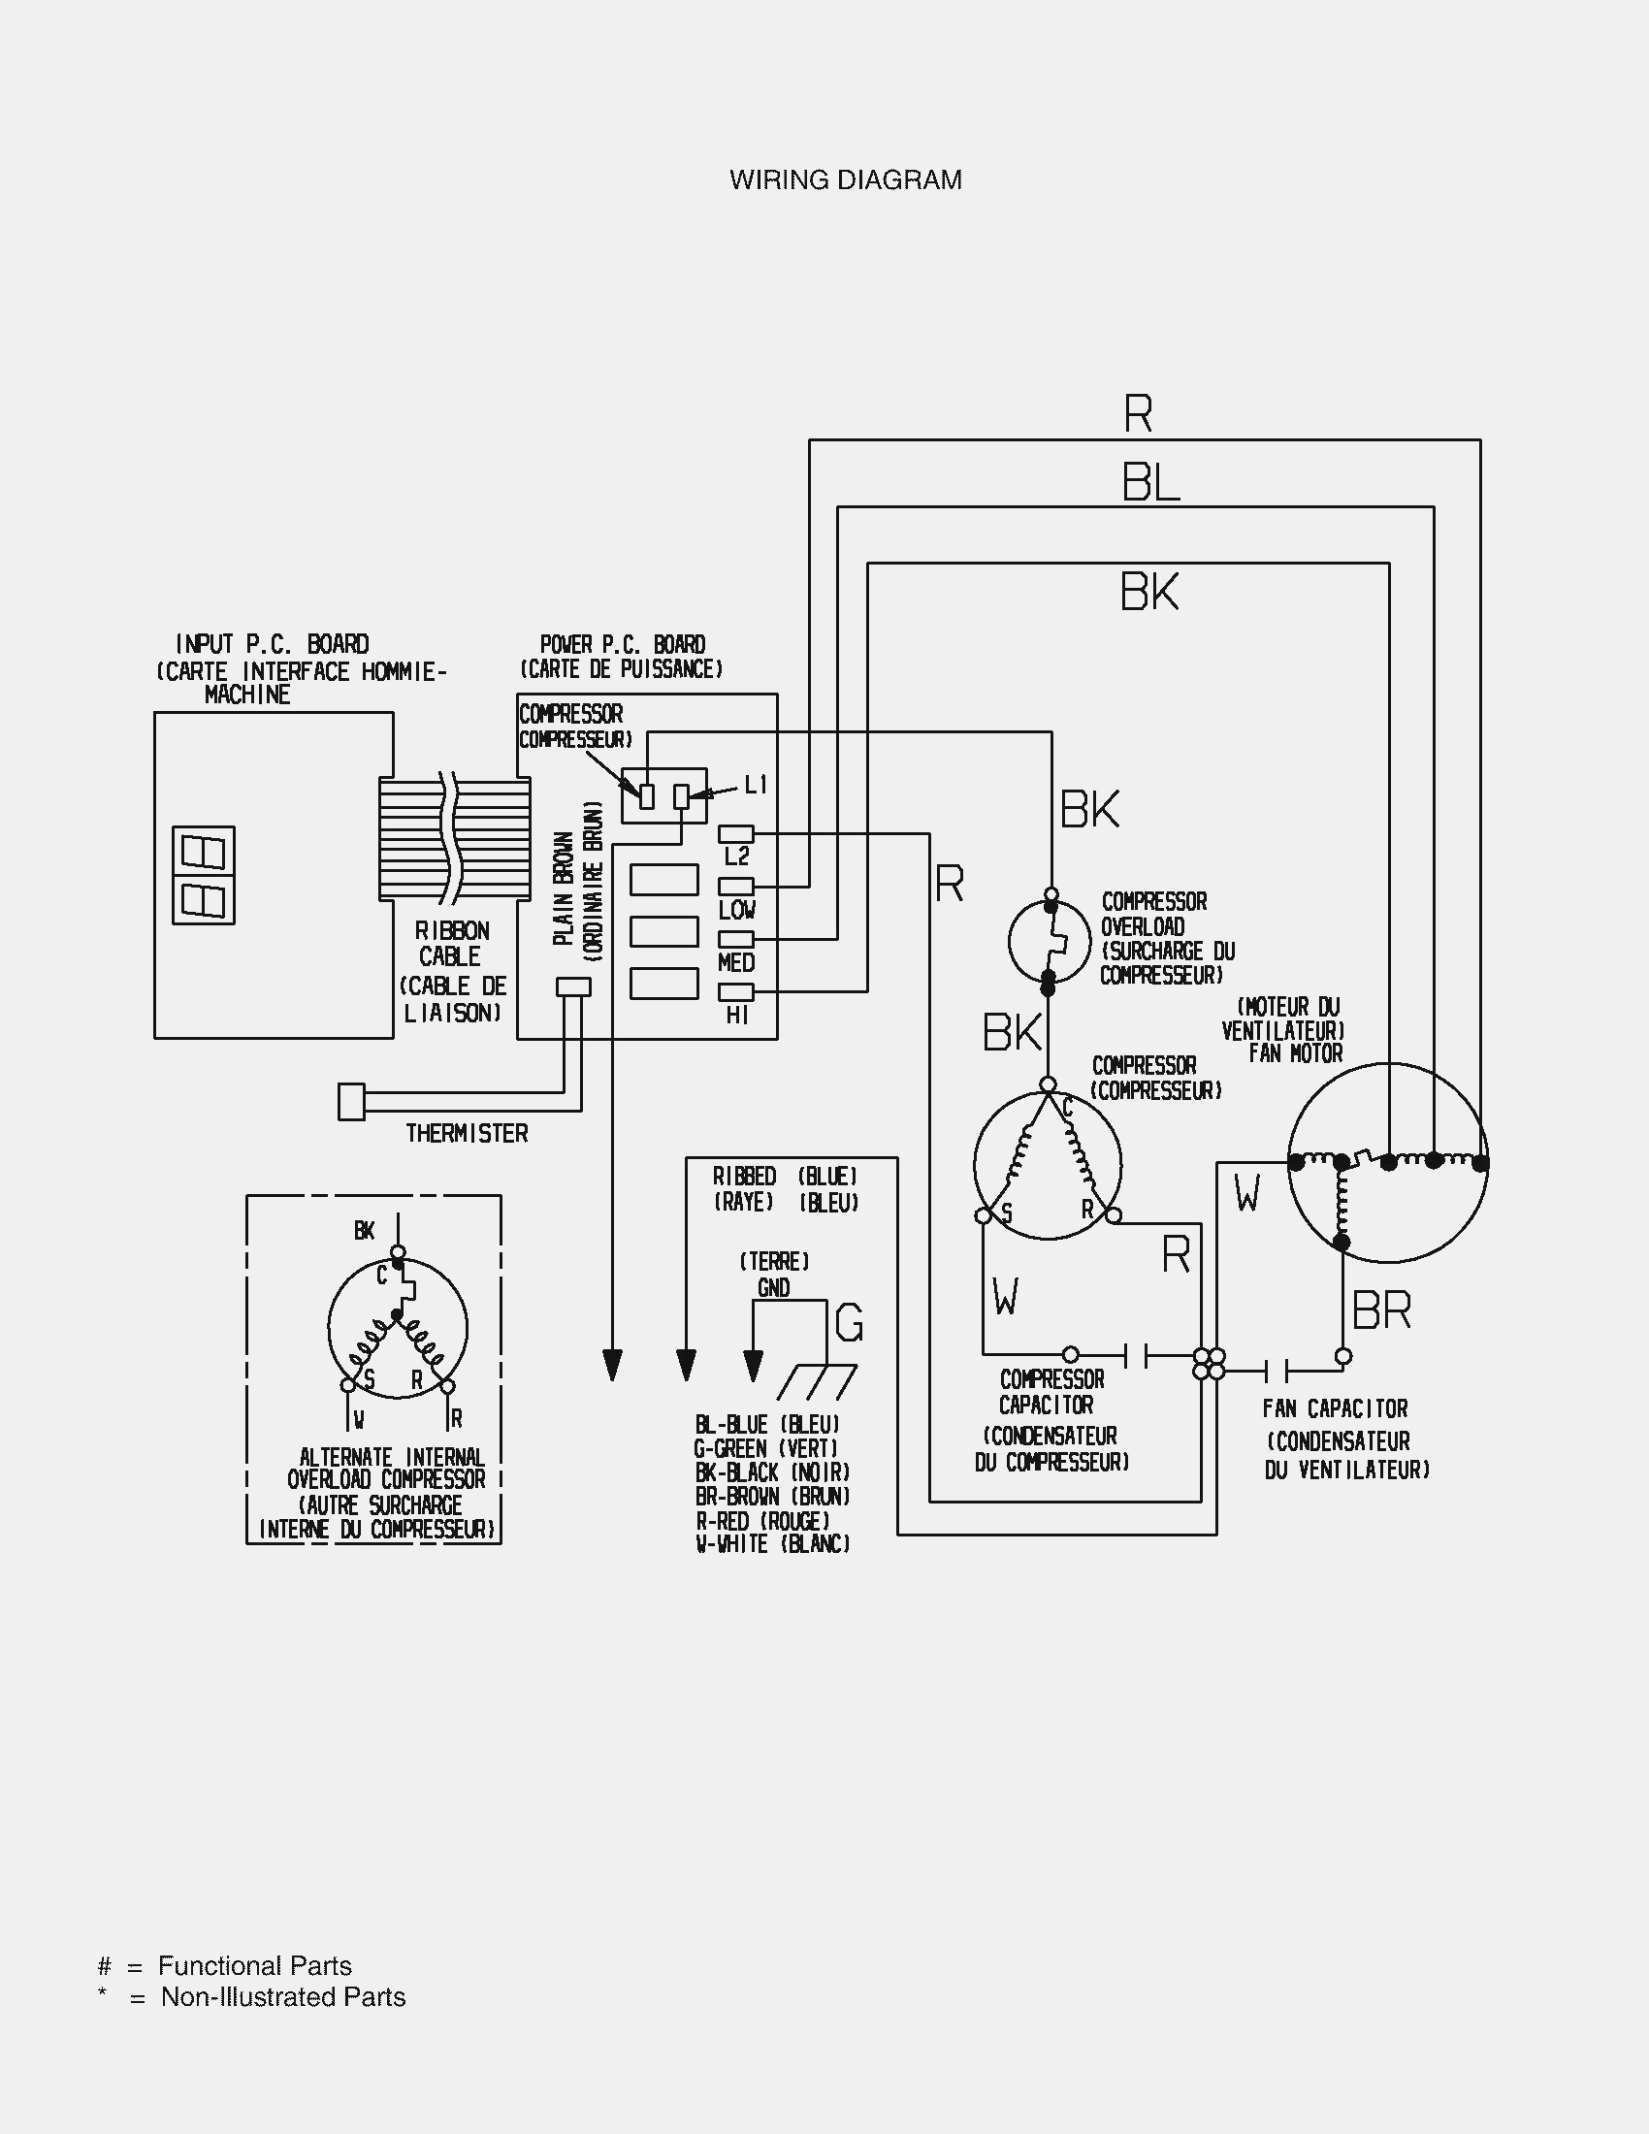 Hvac Dual Capacitor Wiring Diagram | Wiring Diagram - Ac Dual Capacitor Wiring Diagram